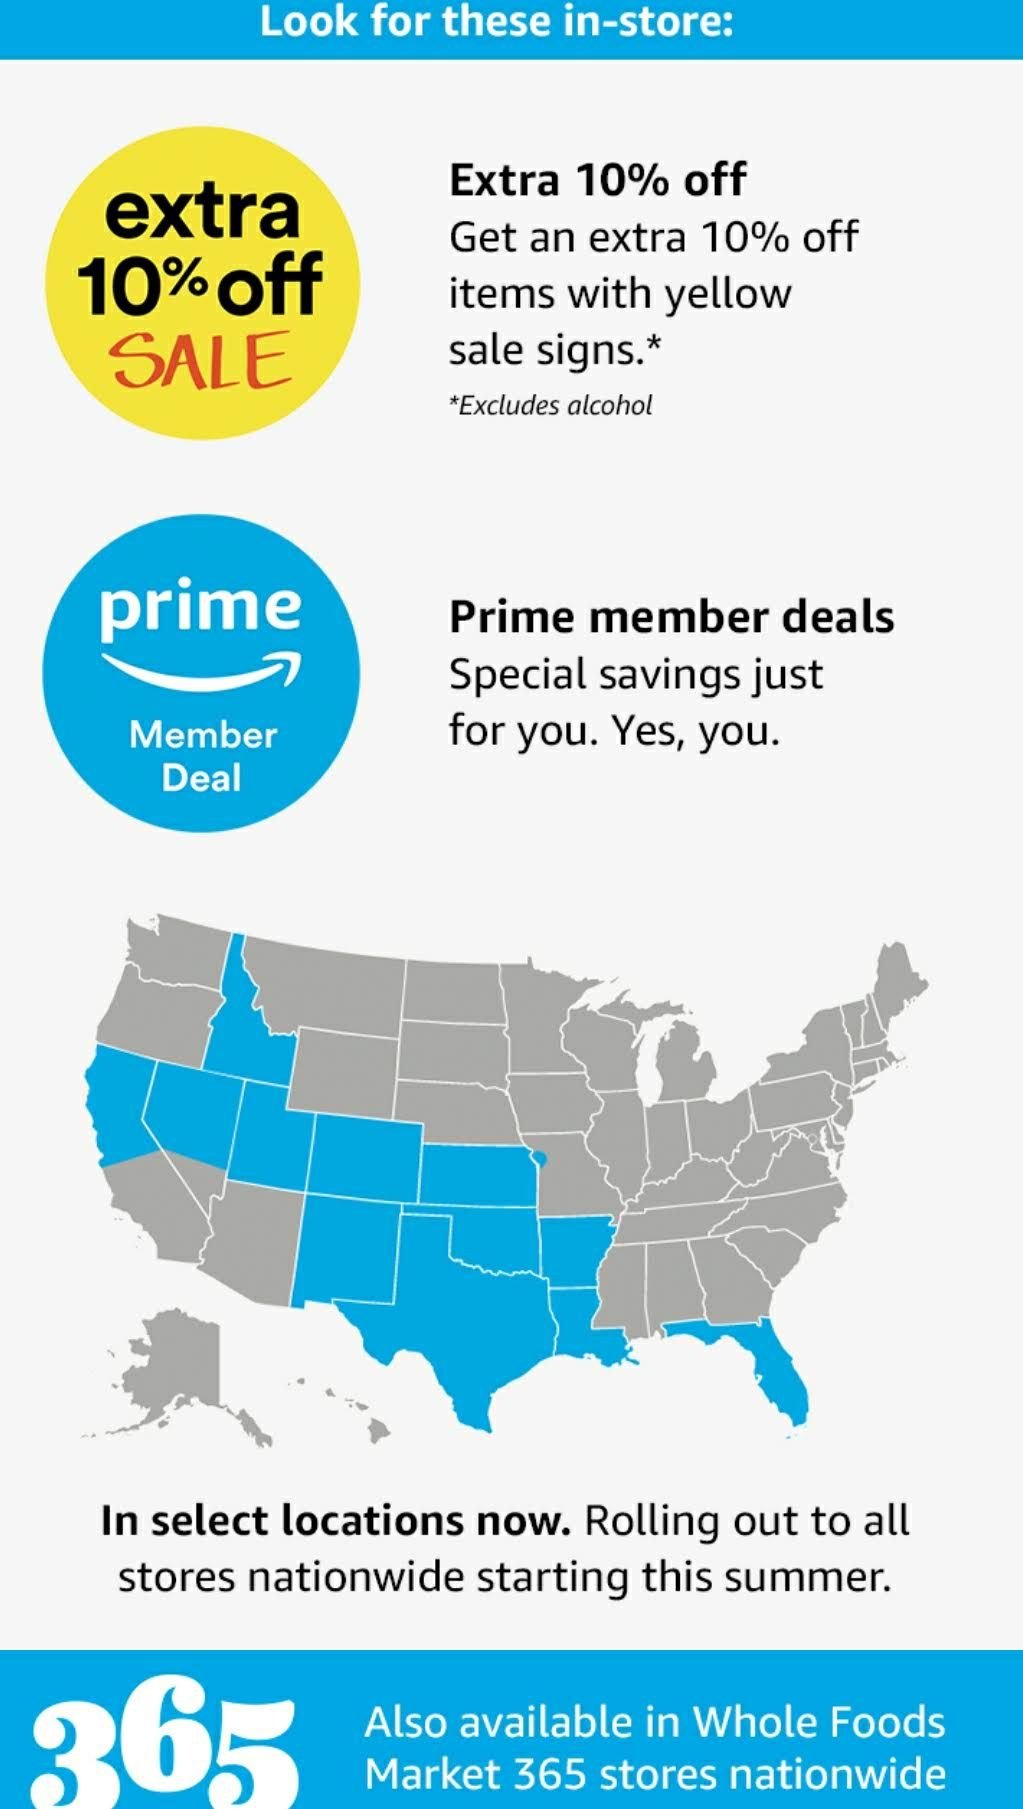 Prime Savings At Whole Foods Market - Loving This Life! - Whole Foods Florida Locations Map